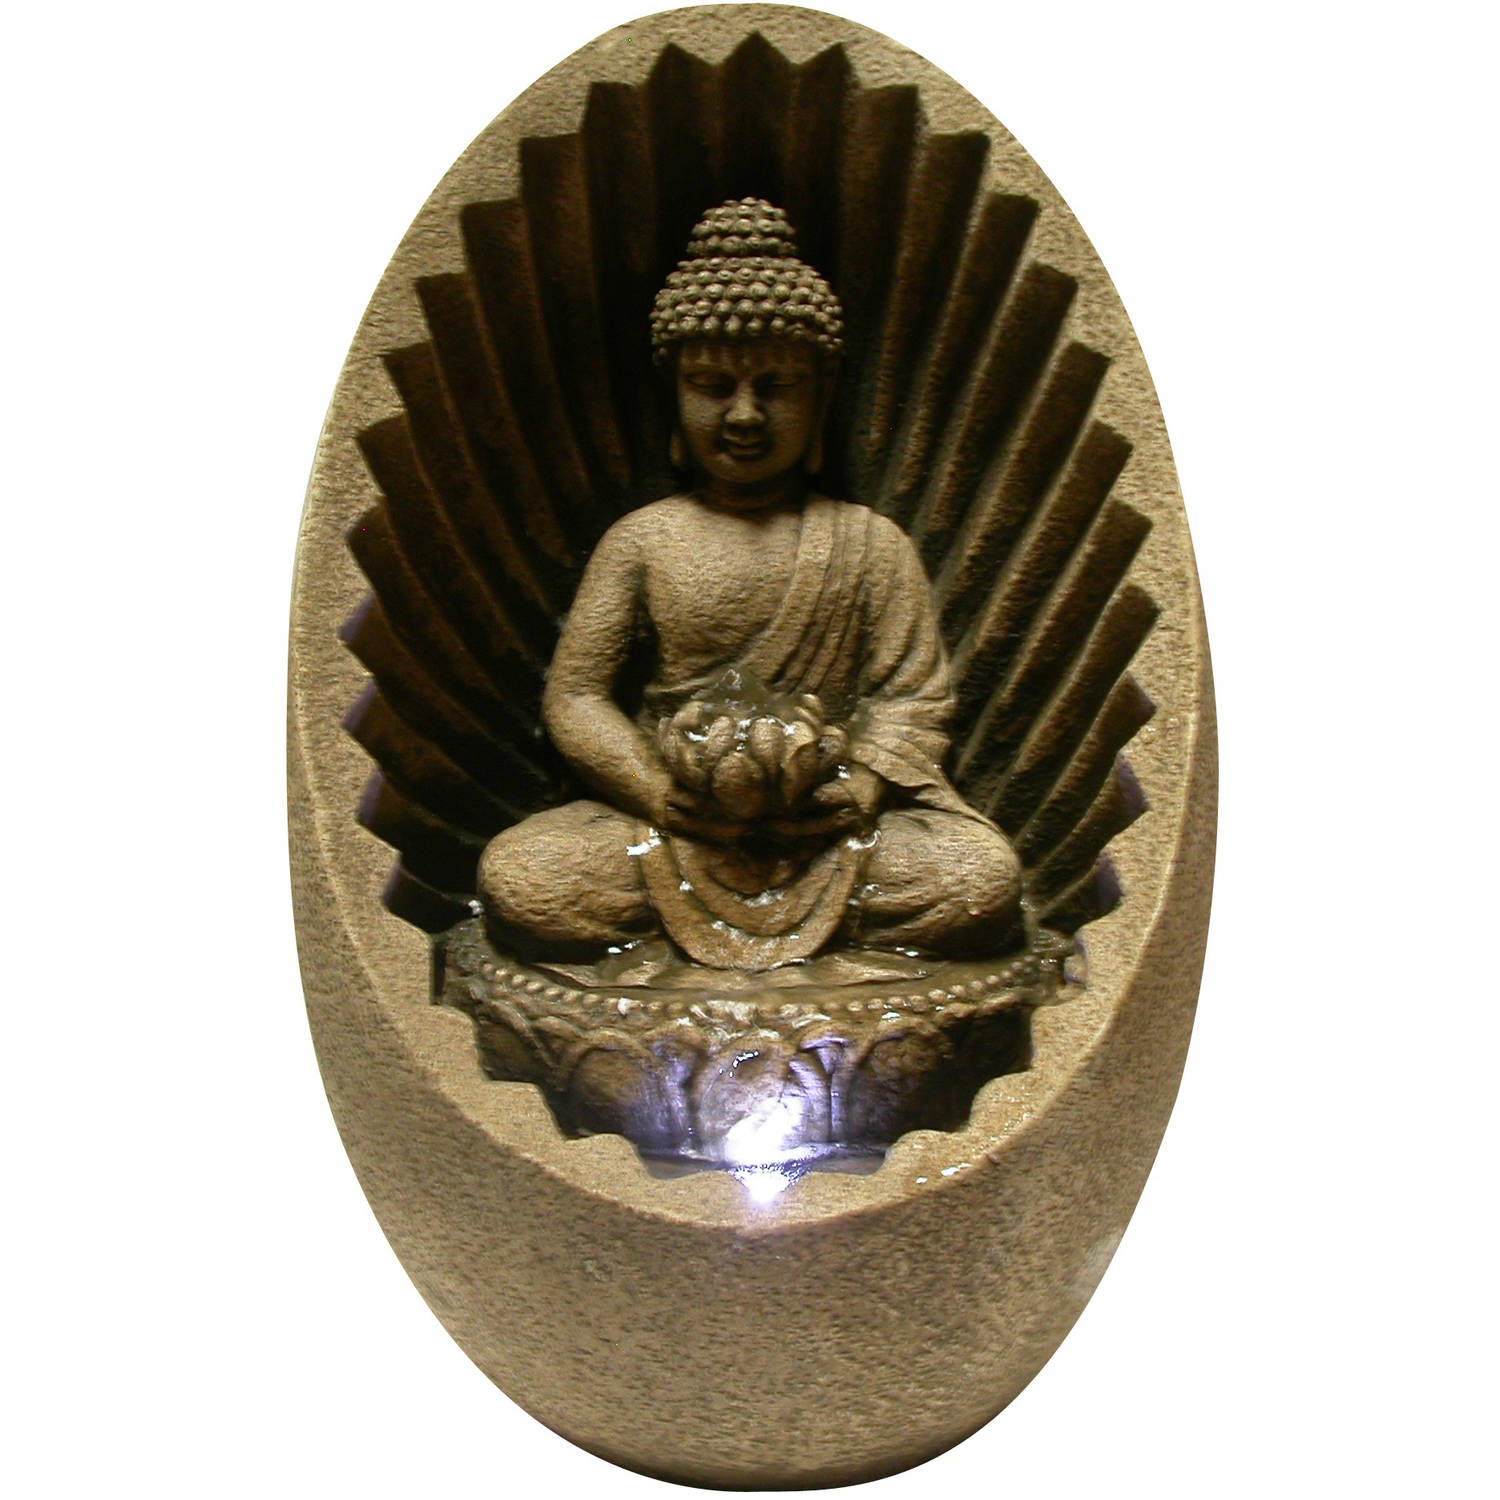 Buddha Tabletop Fountain with LED light by Alpine Corporation